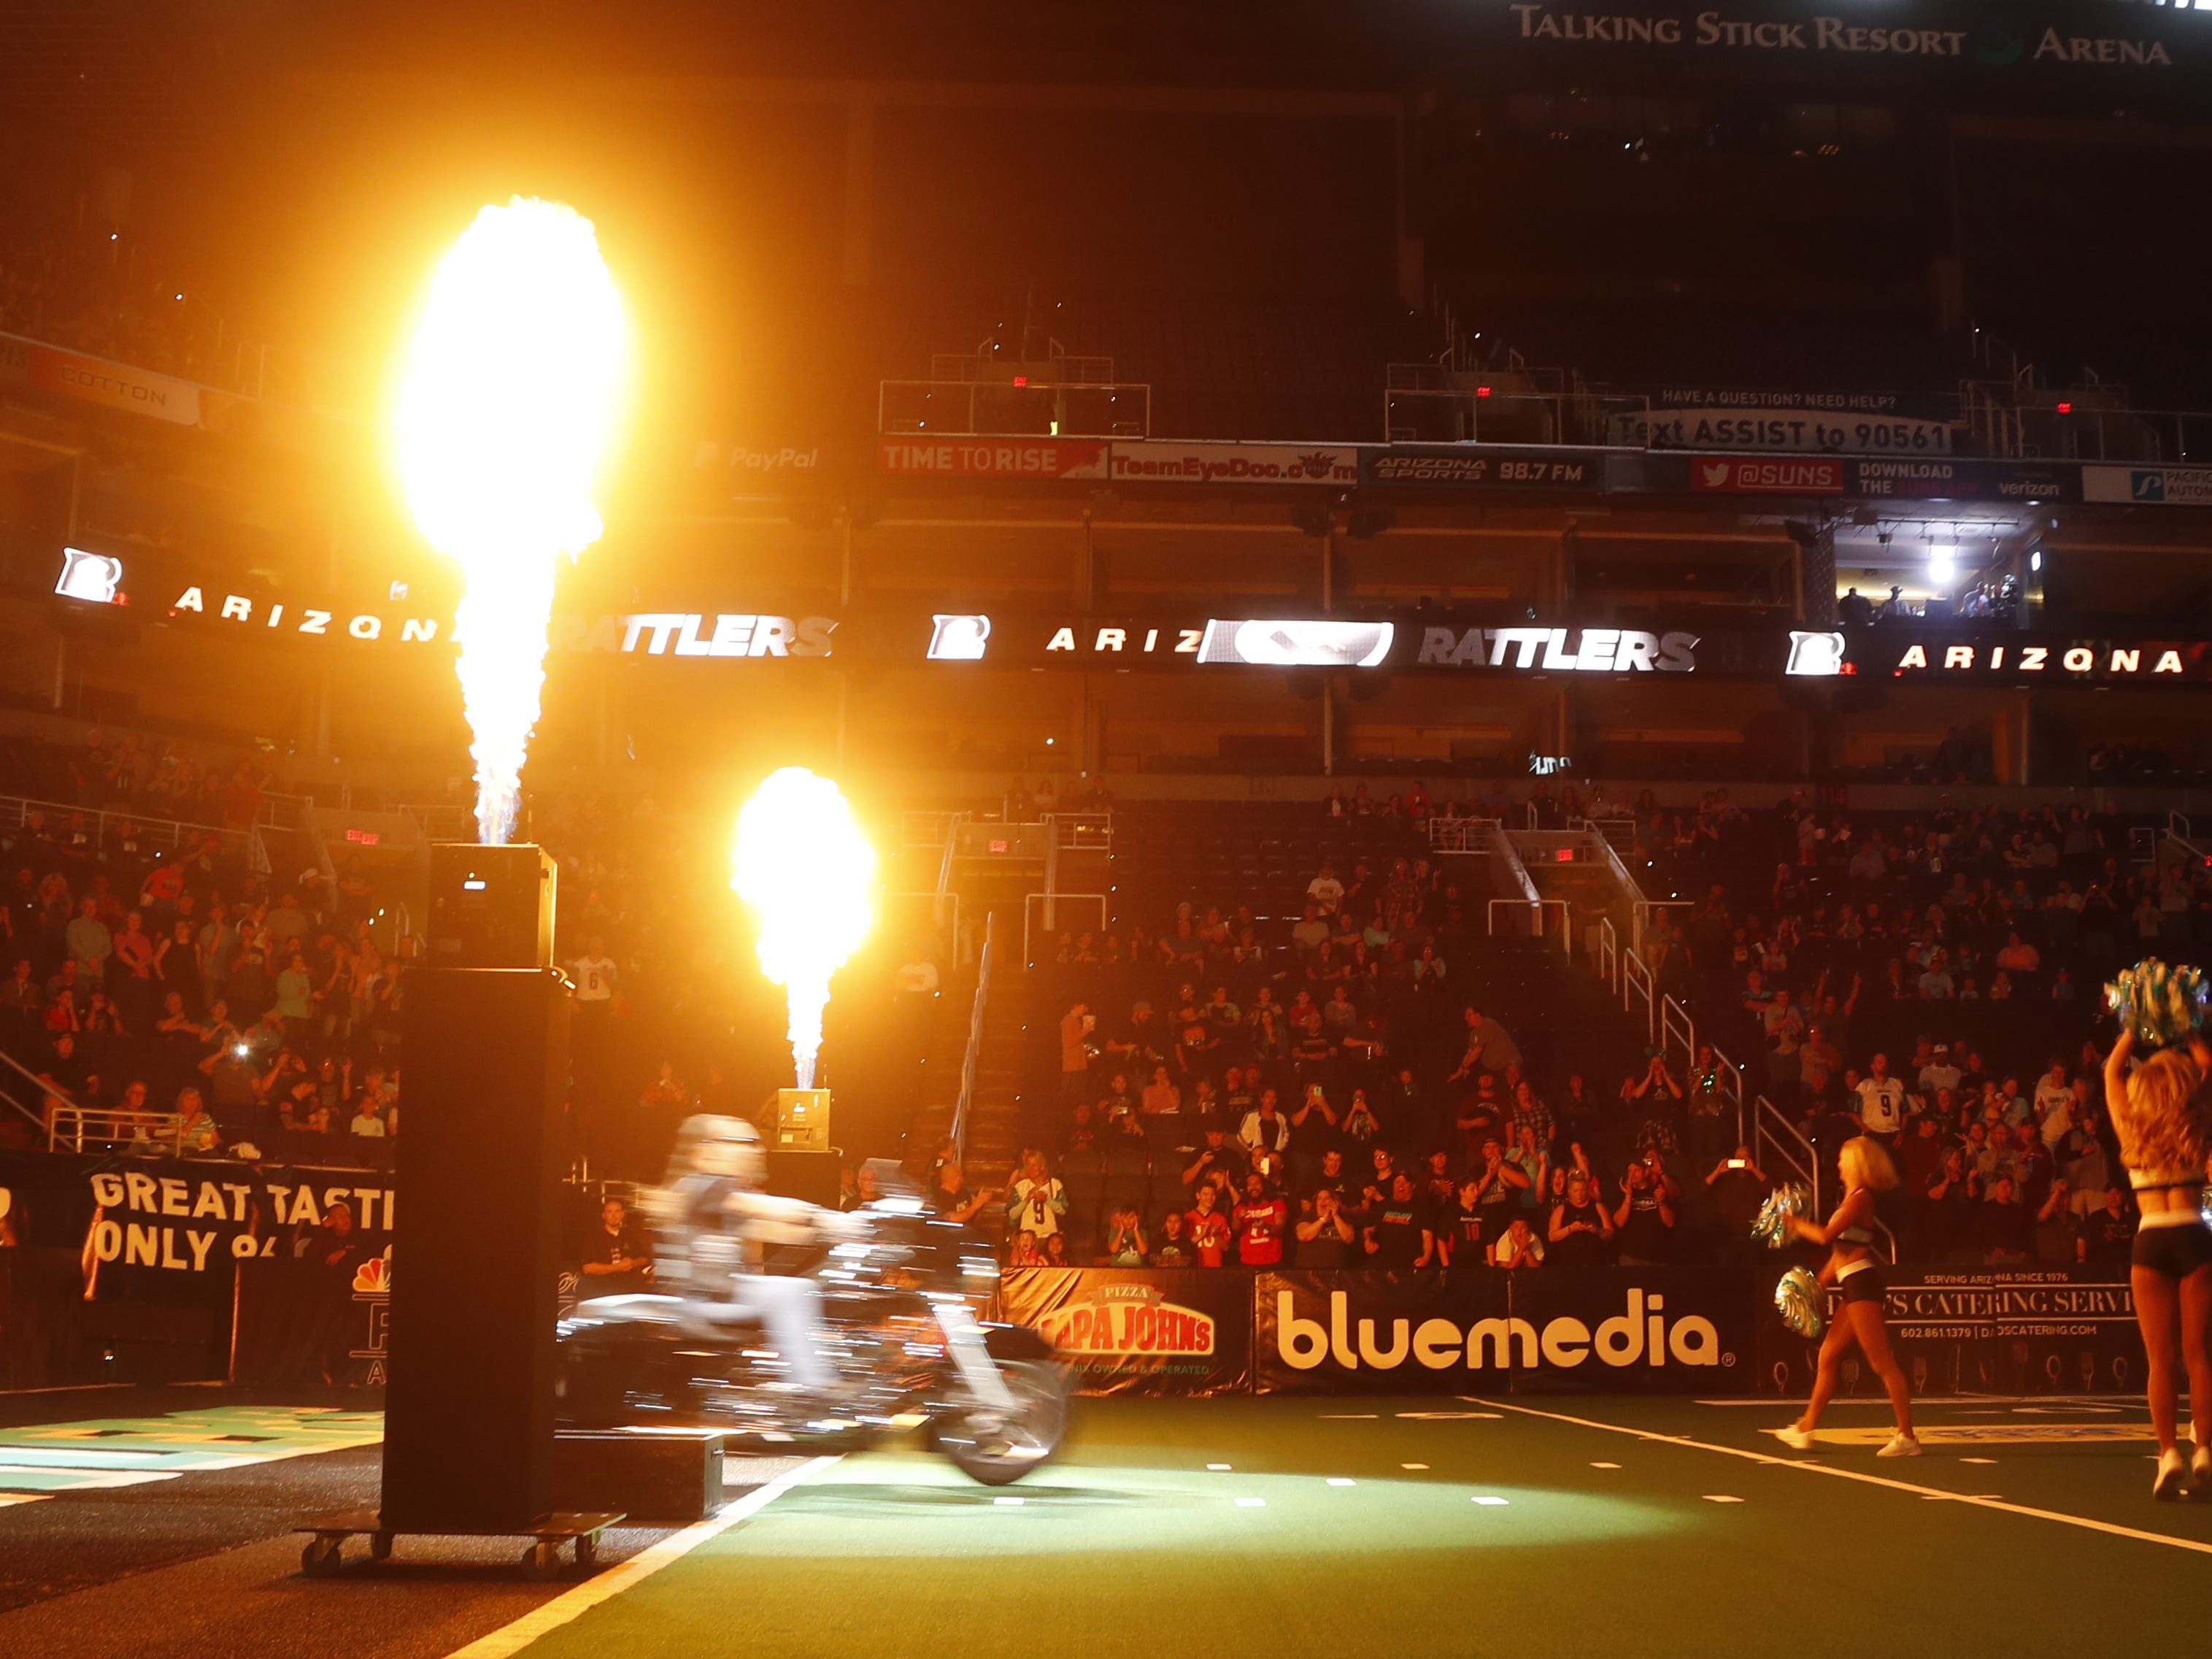 Rattlers' motorcycle takes the field before the game against the Sugar Skulls at Talking Stick Resort Arena in Phoenix, Ariz. on March 16, 2019.